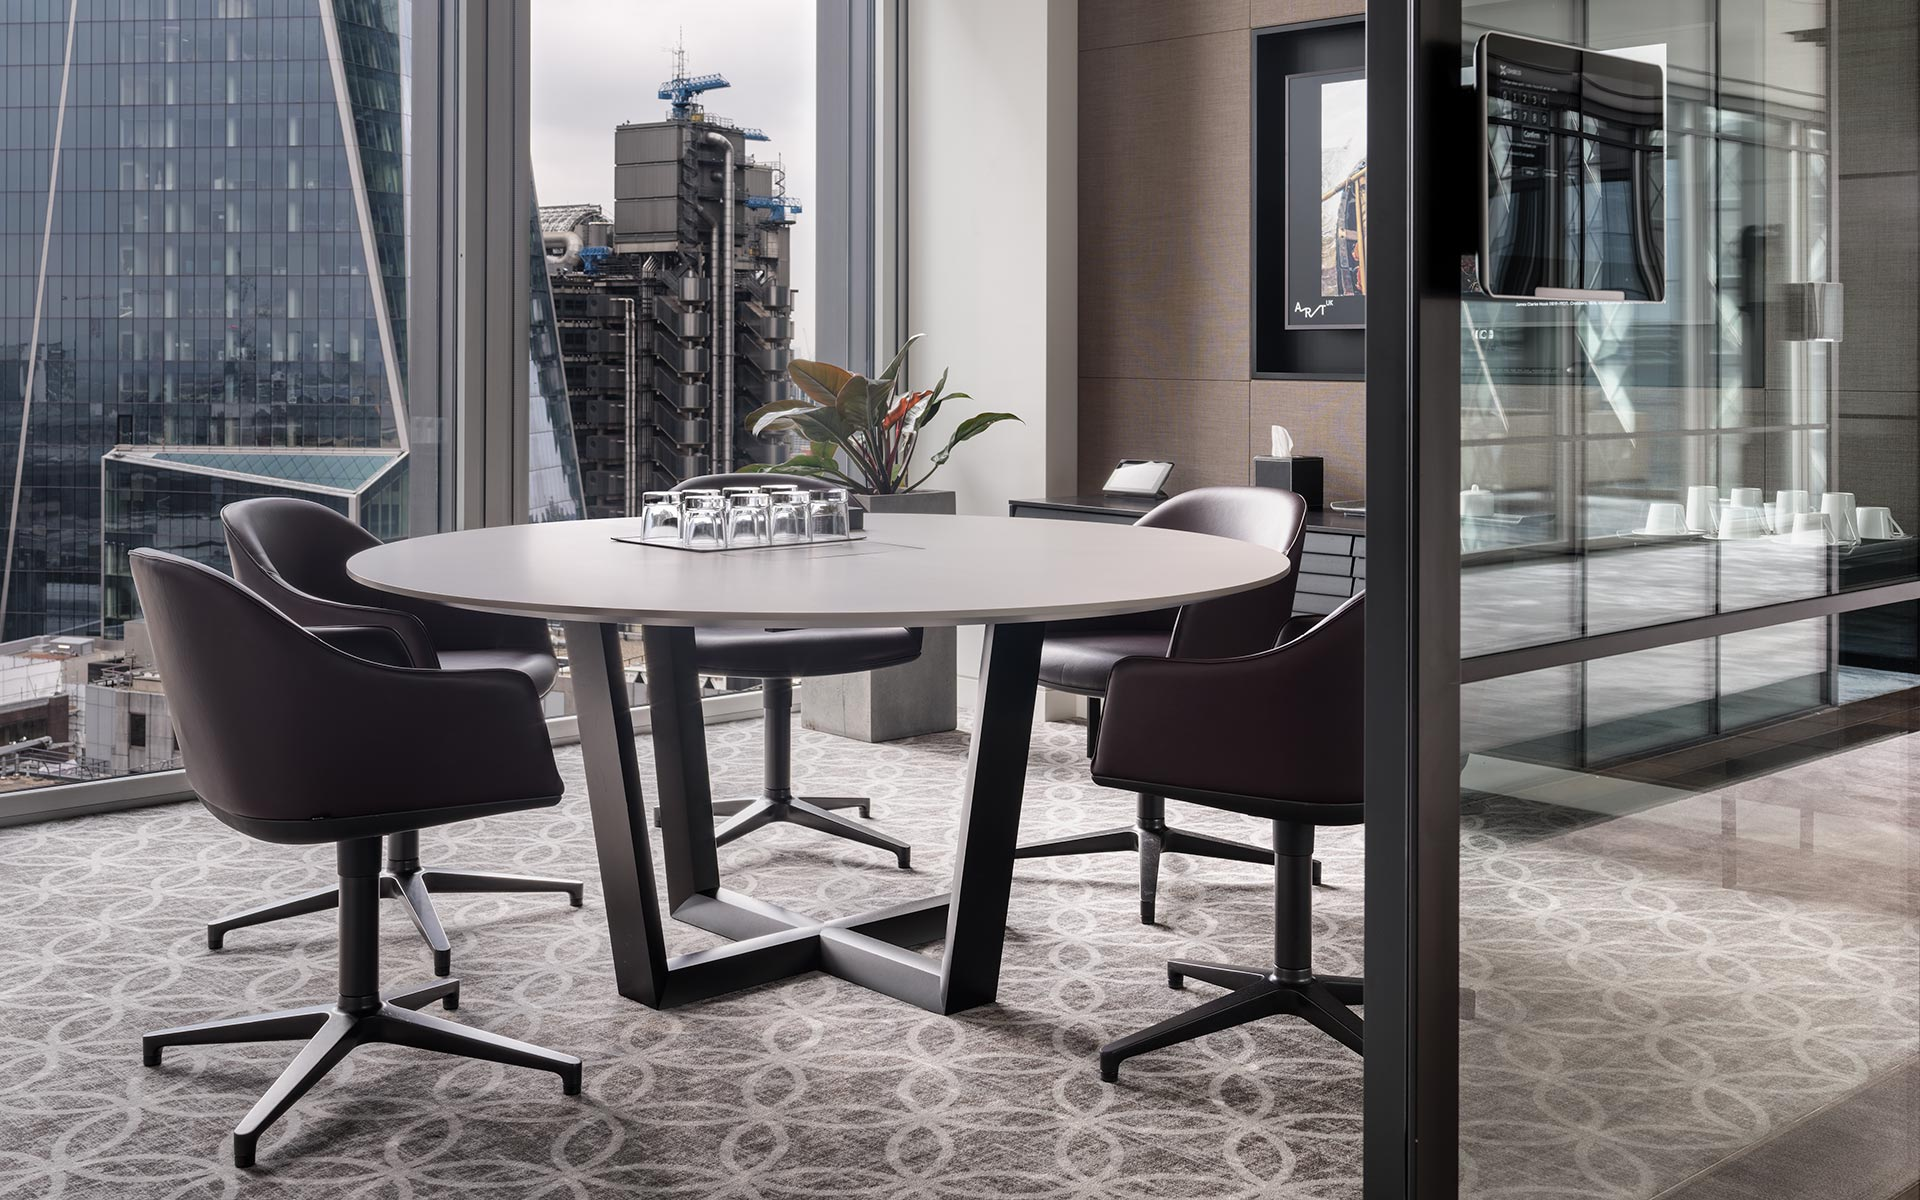 Bespoke round meeting table in small office with Lloyds of London Building in background